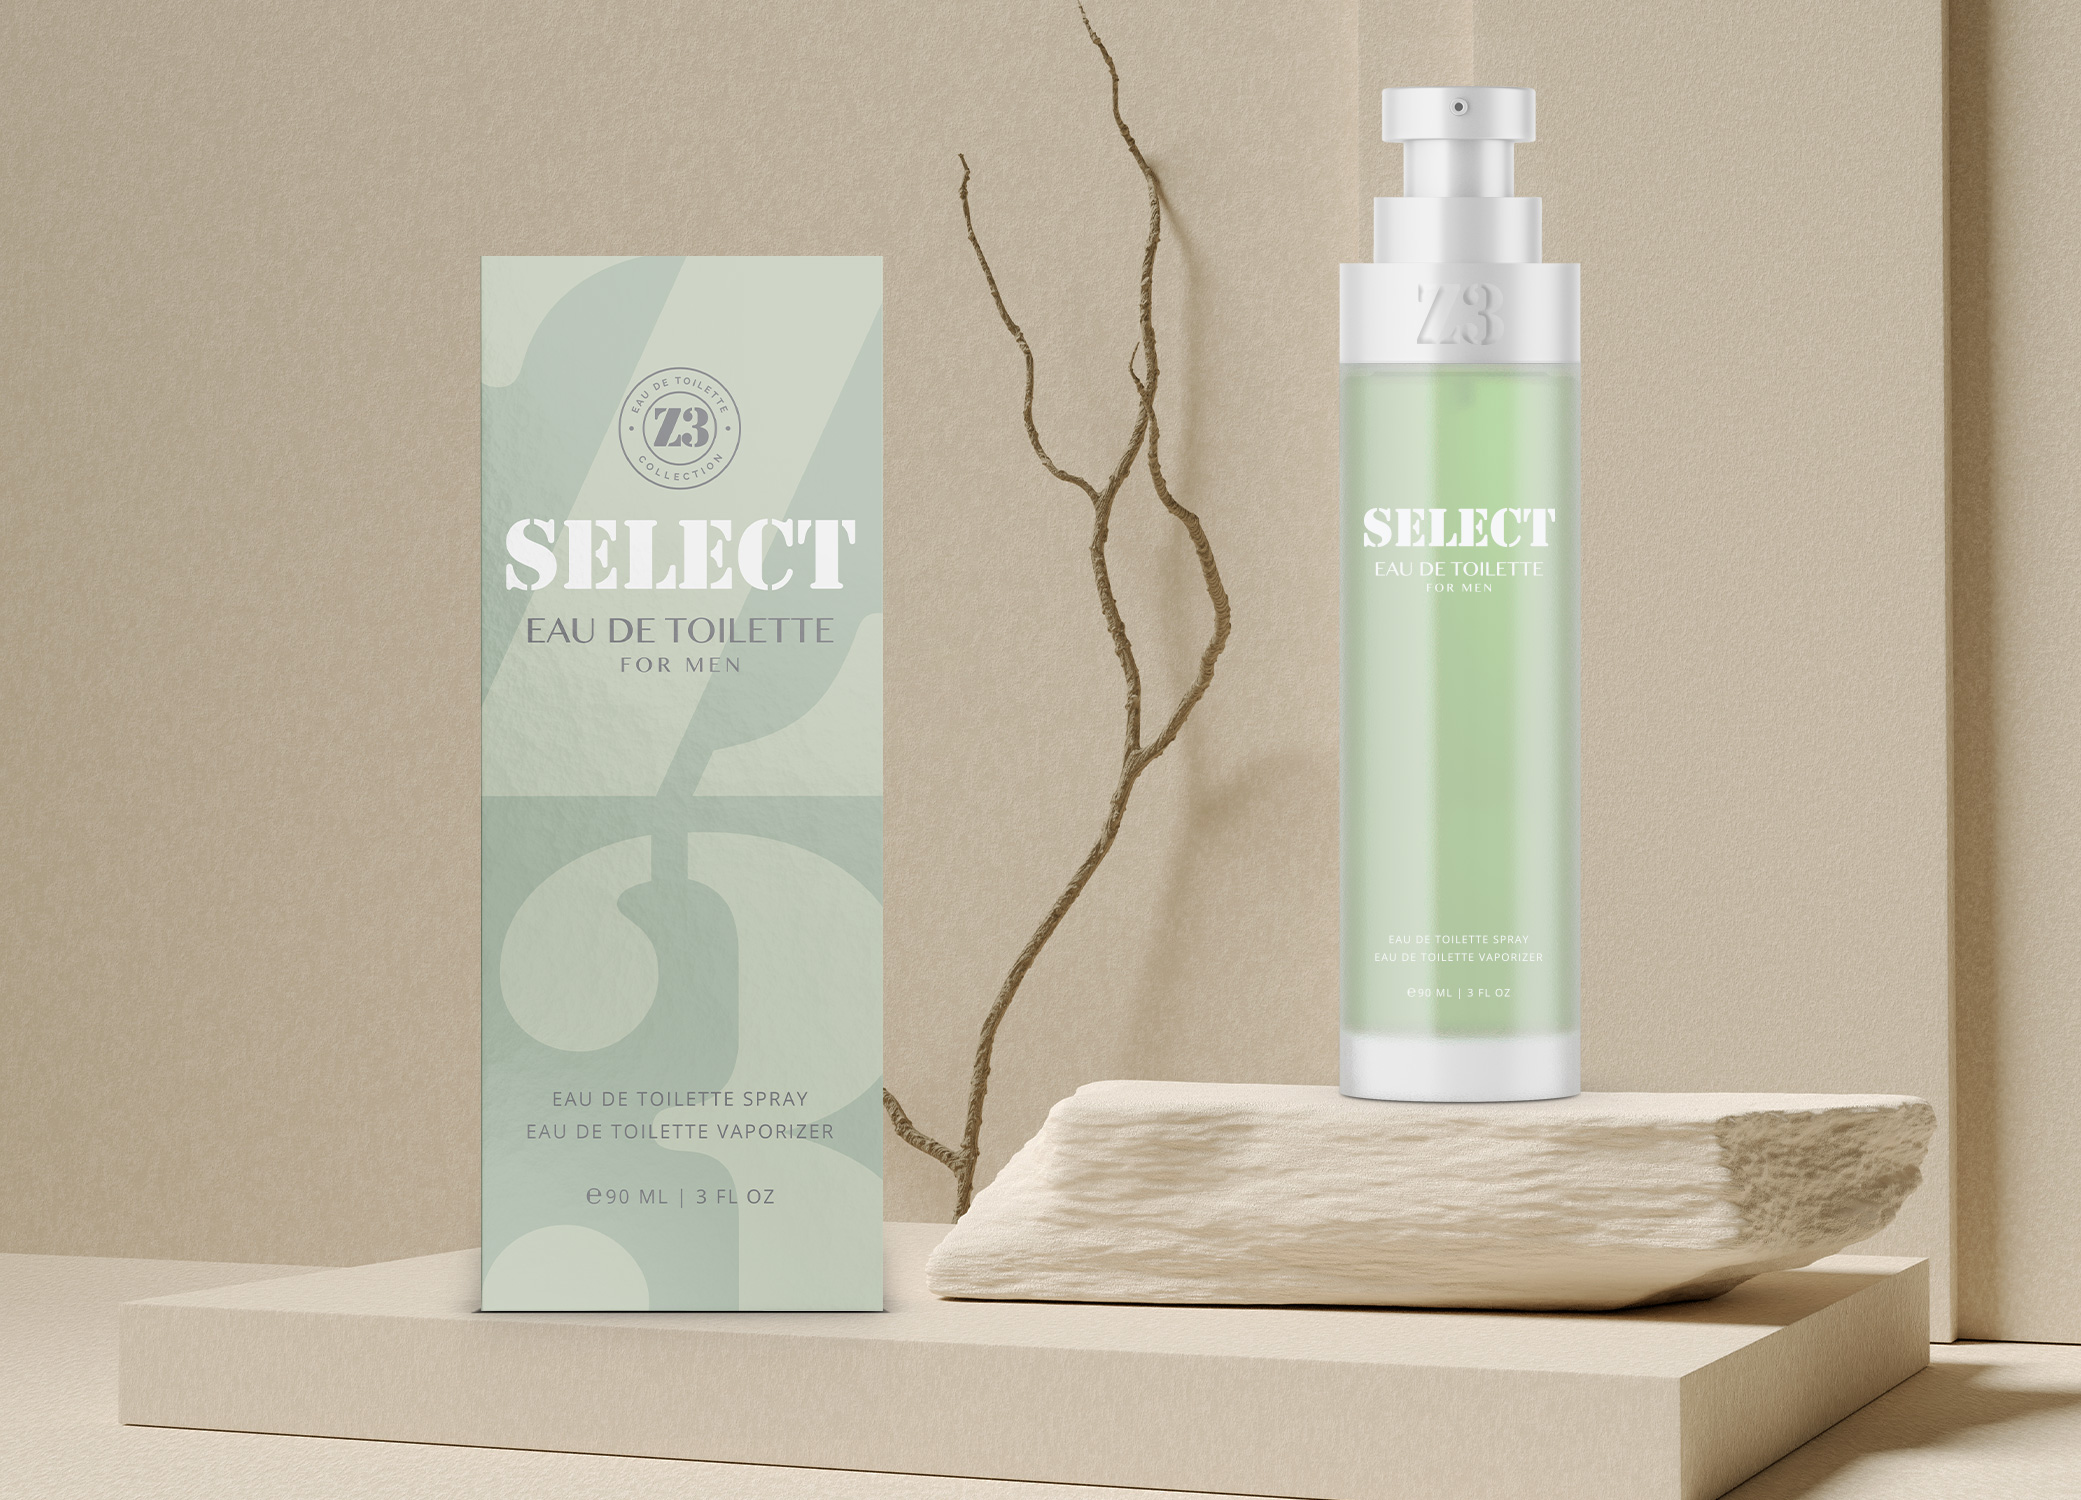 YZY Perfume men's fragrance bottle and package design in cool grey and green with stenciling for Z3 Select product.